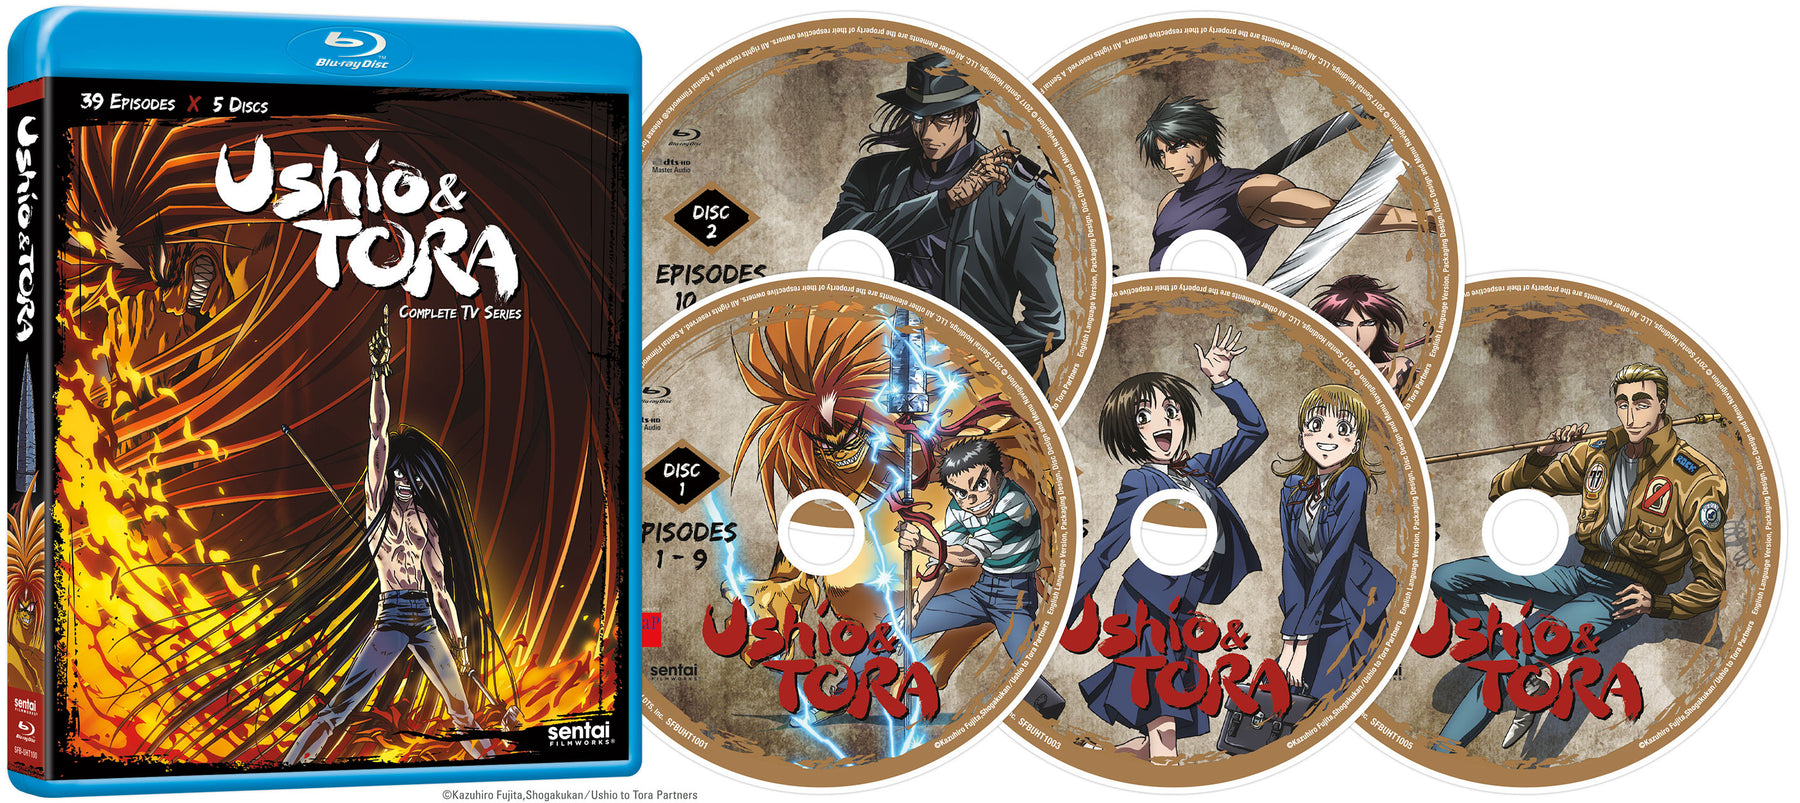 Ushio & Tora Complete Collection Blu-ray Disc Spread